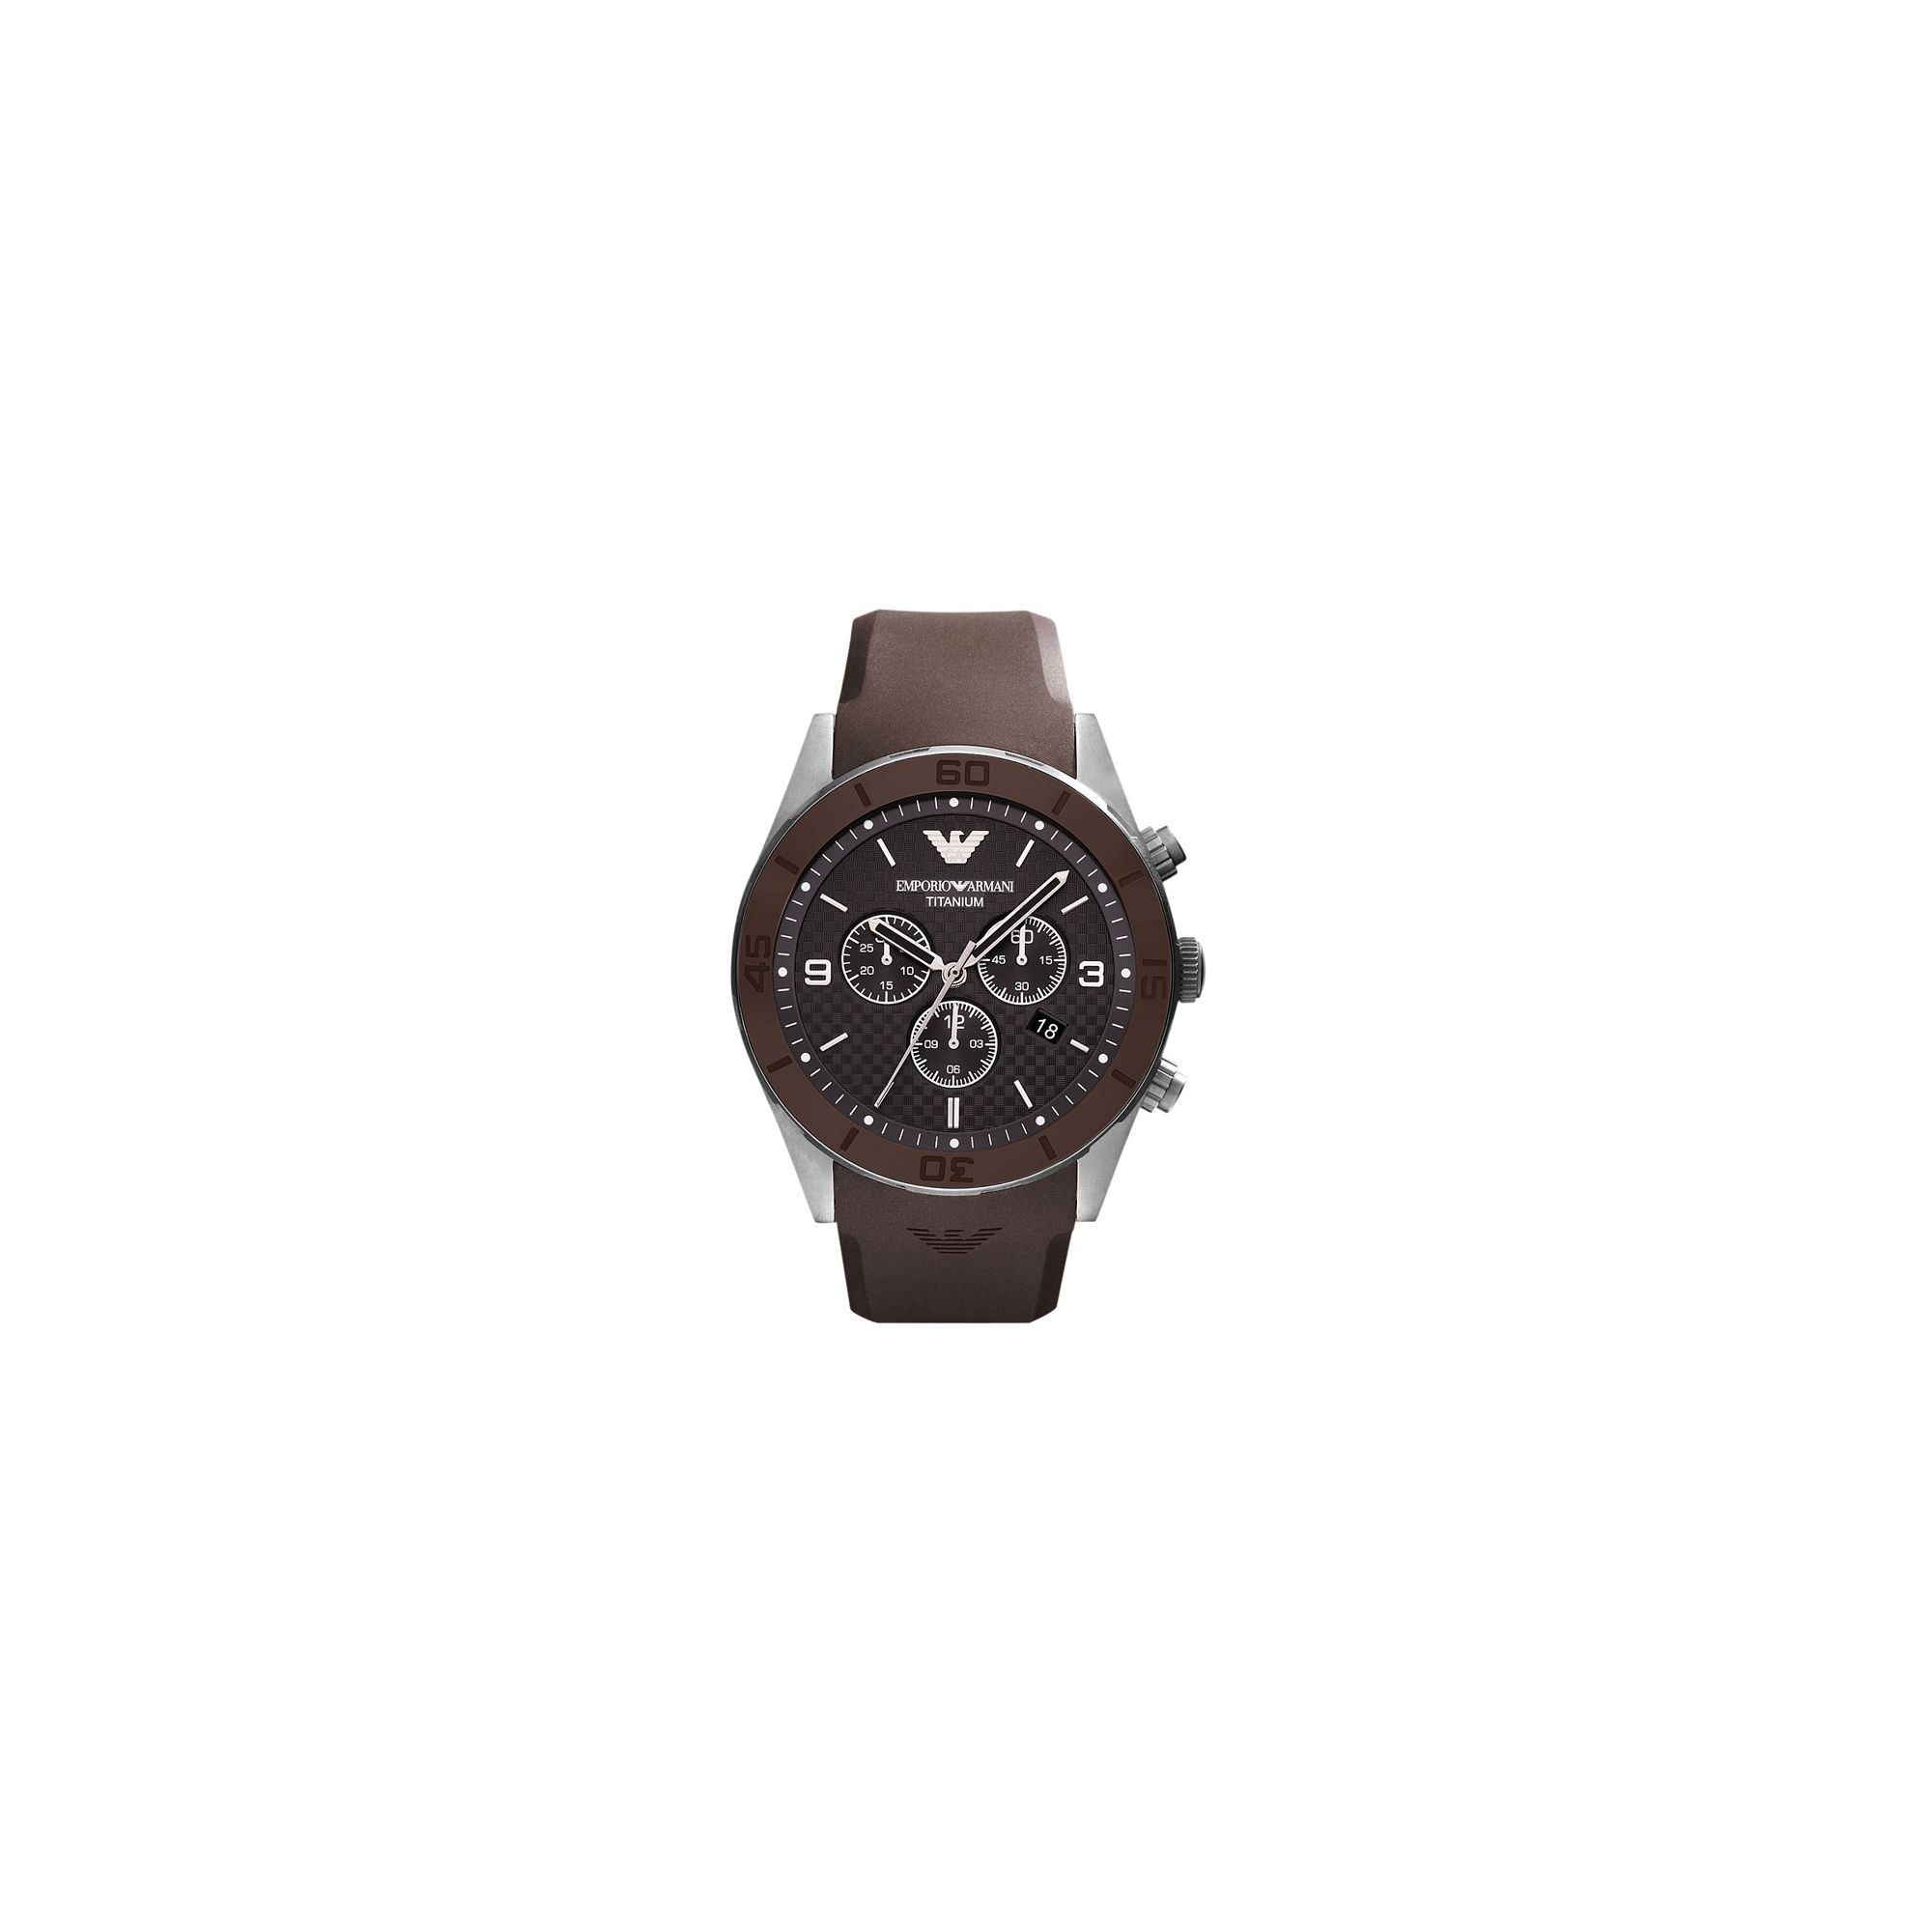 Emporio Armani Gents Brown Rubber Strap Chronograph Watch AR9501 at Tesco Direct